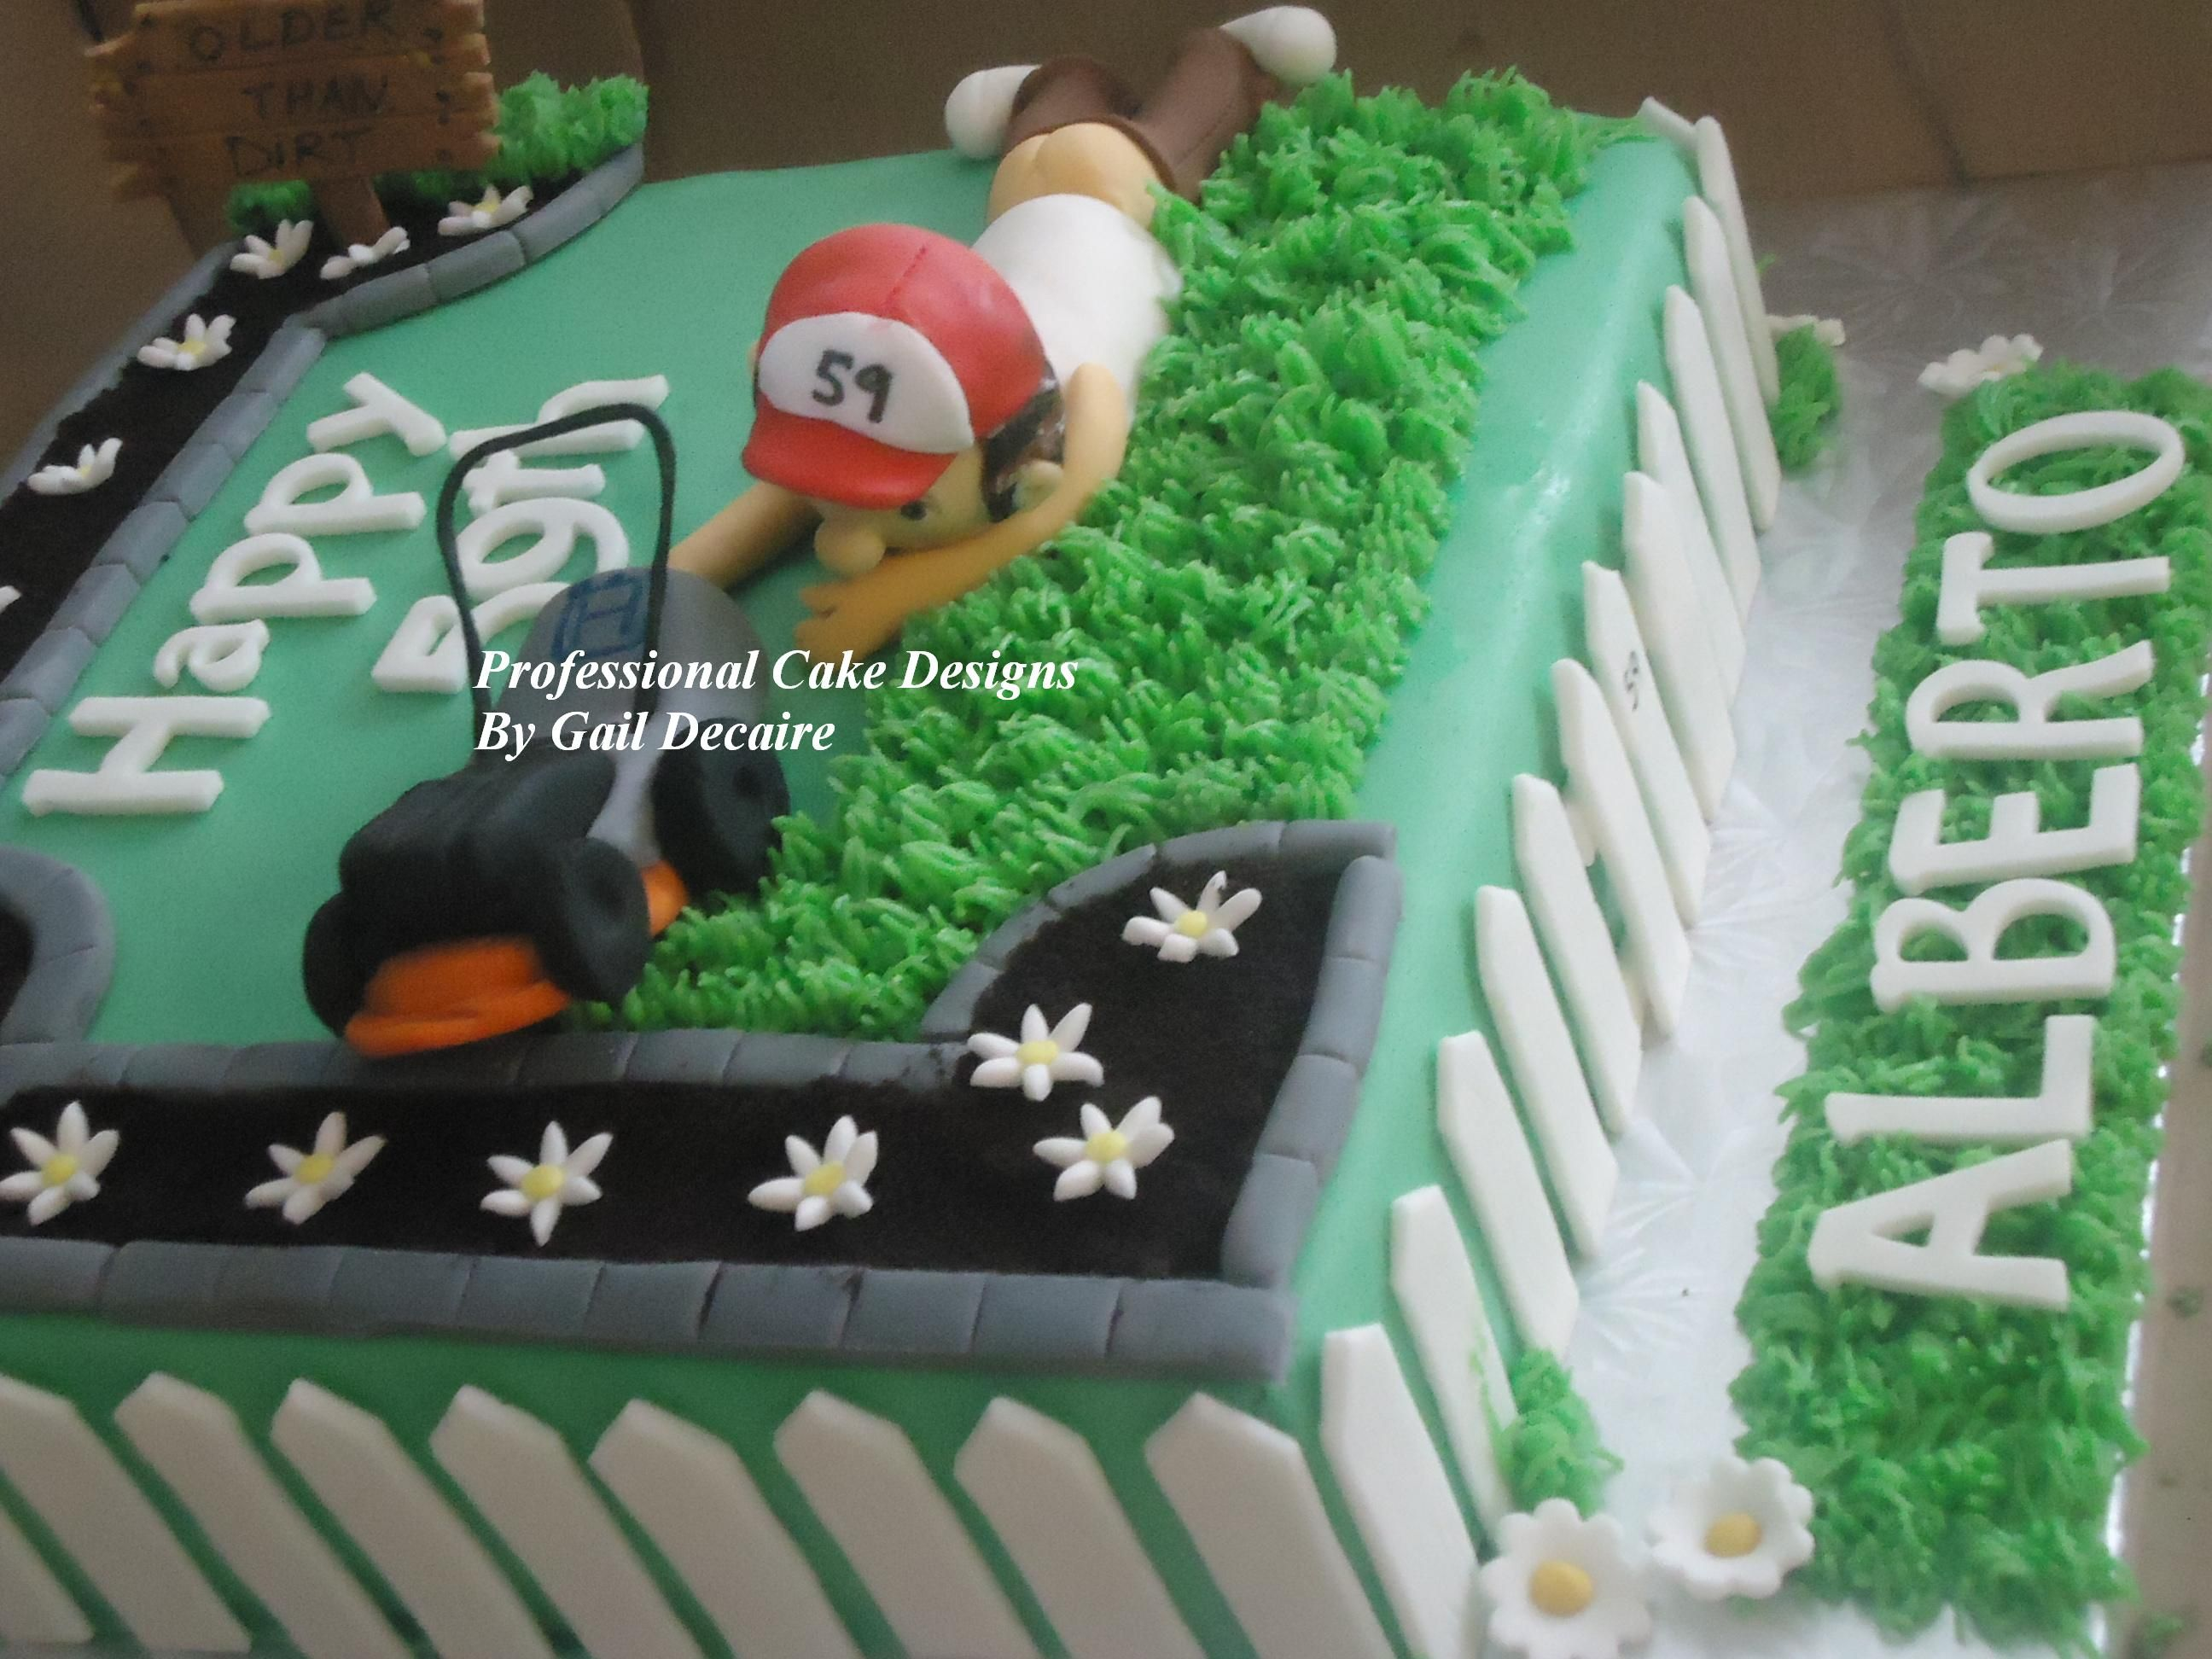 Landscaping Cake Gail Decaire Professional Cake Designs Like Share Or Follow Me On Facebook